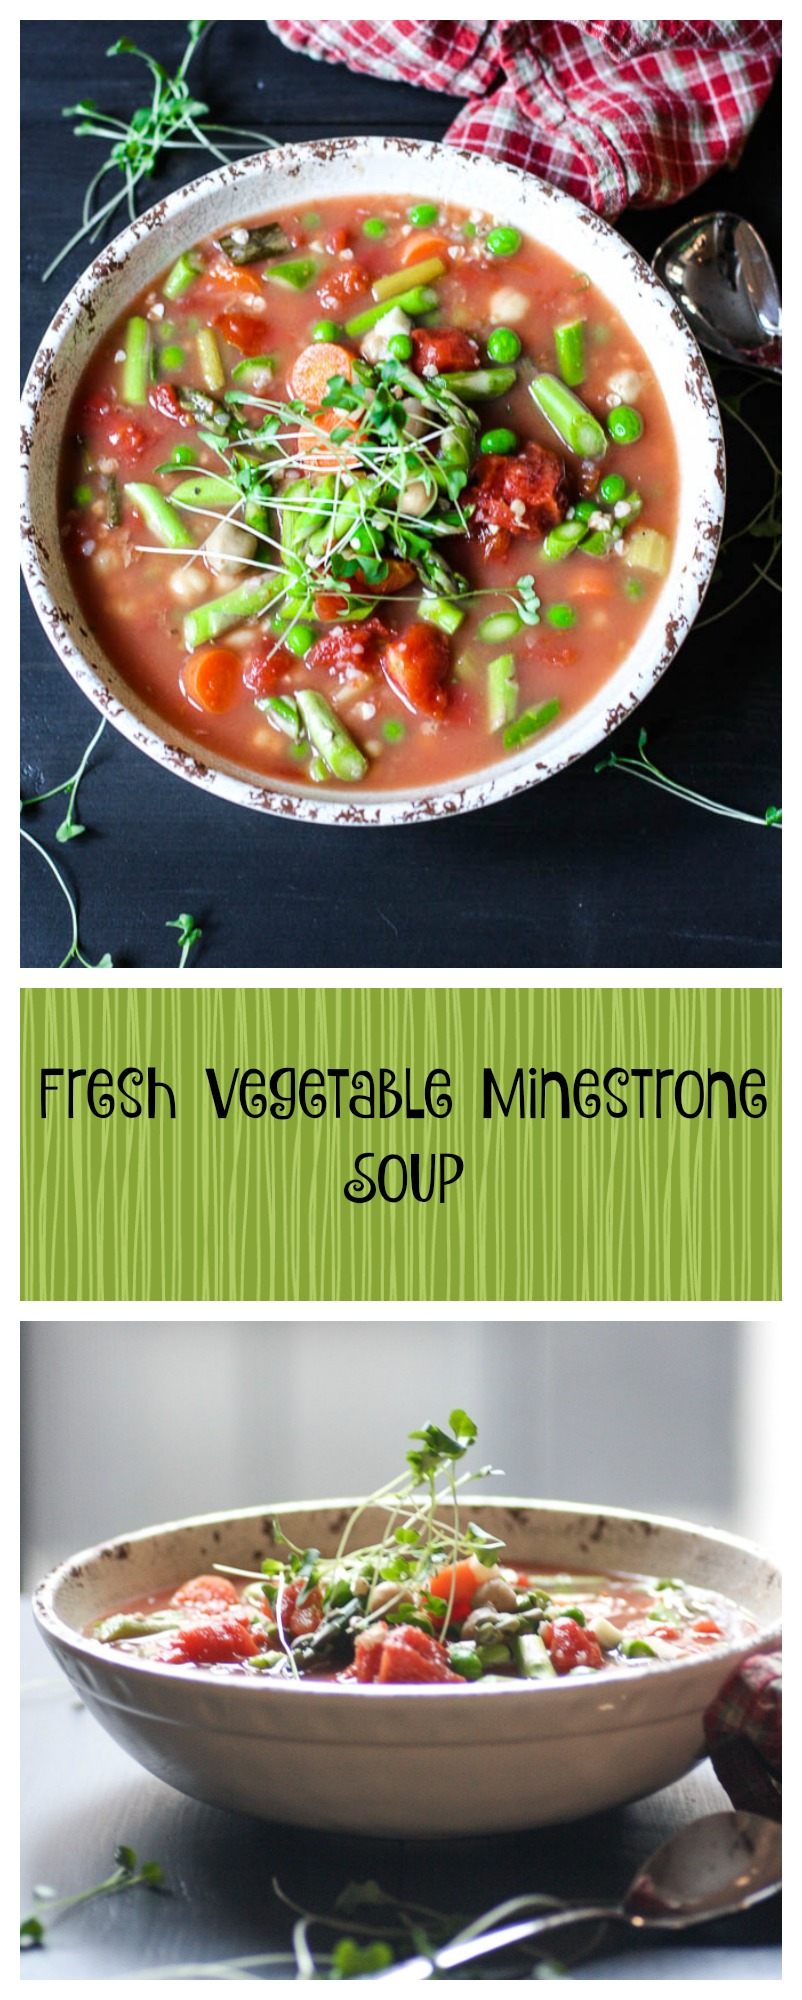 slow cooker vegetable minestrone soup